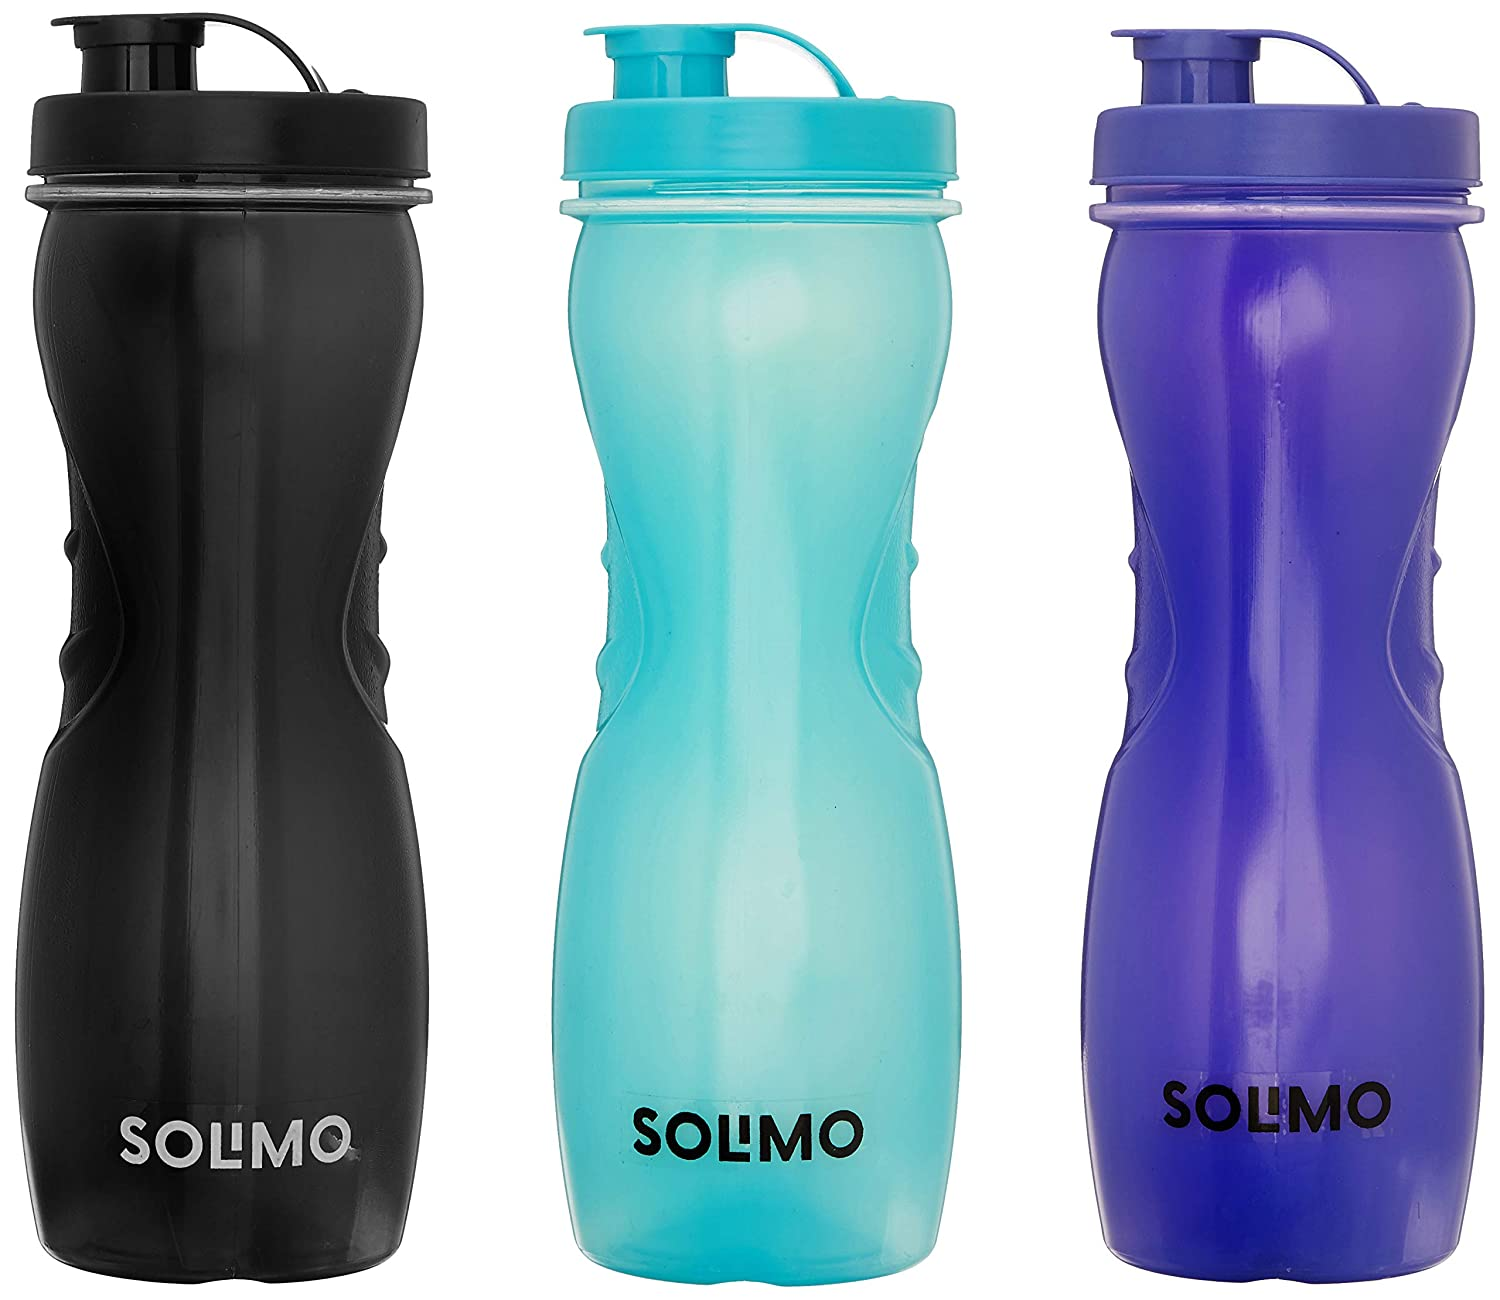 60% Off Deal – Solimo Water Bottle, Set of 3, 1L